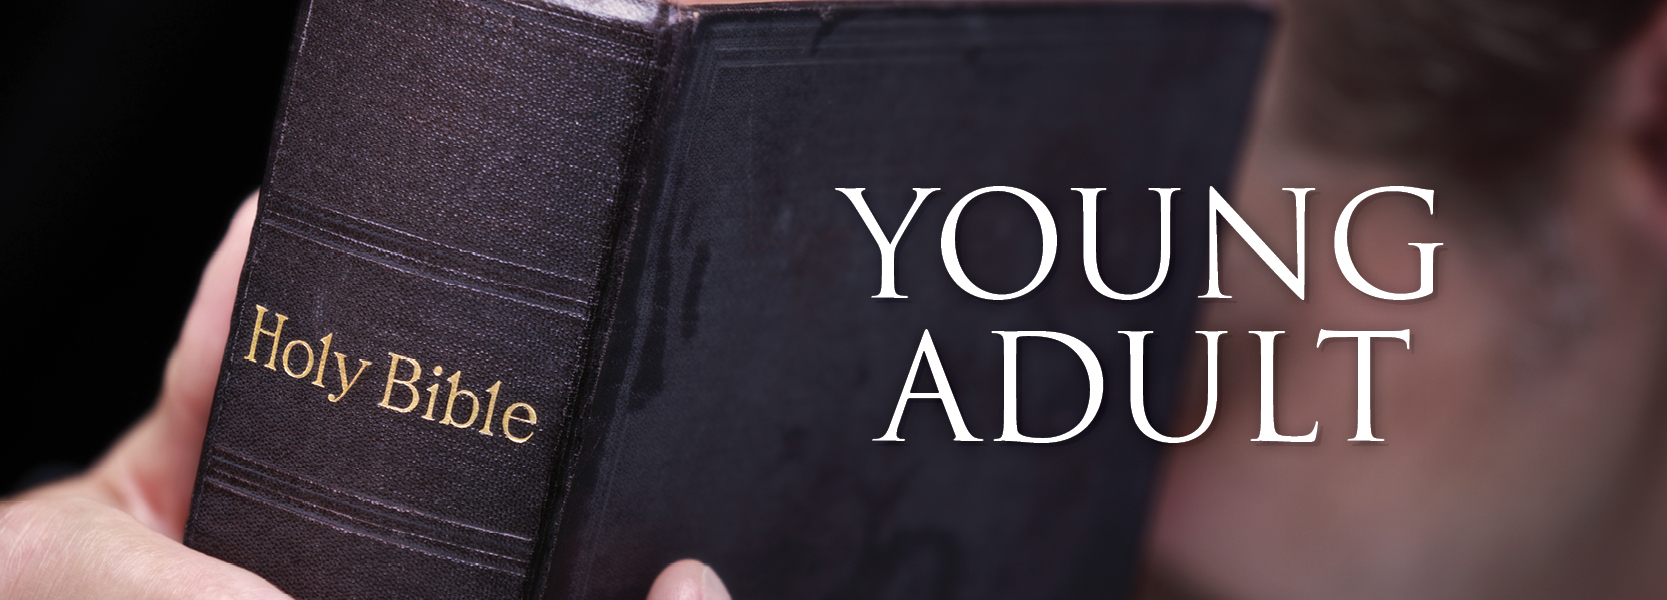 great biblical sermons for young adults